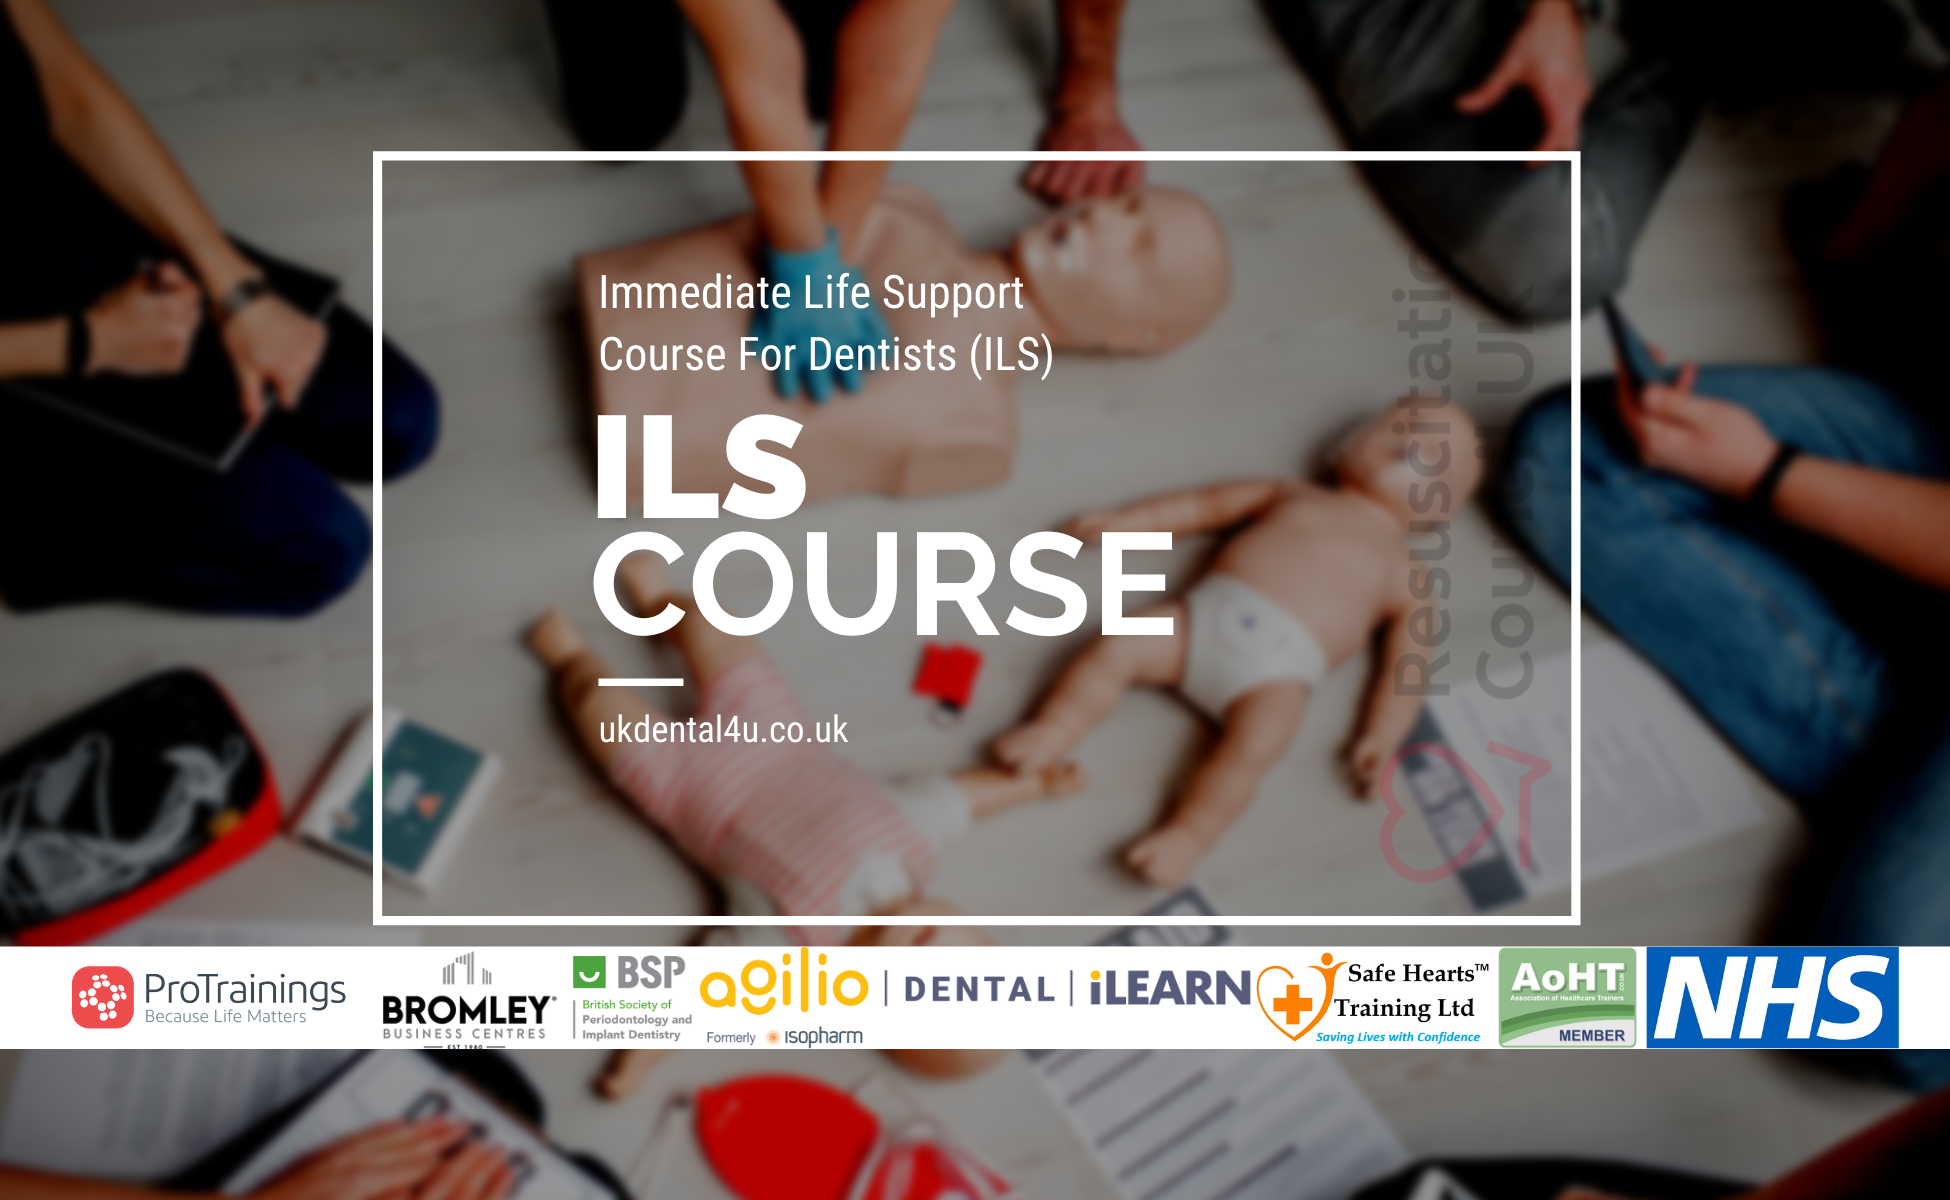 Immediate Life Support (ILS) Course